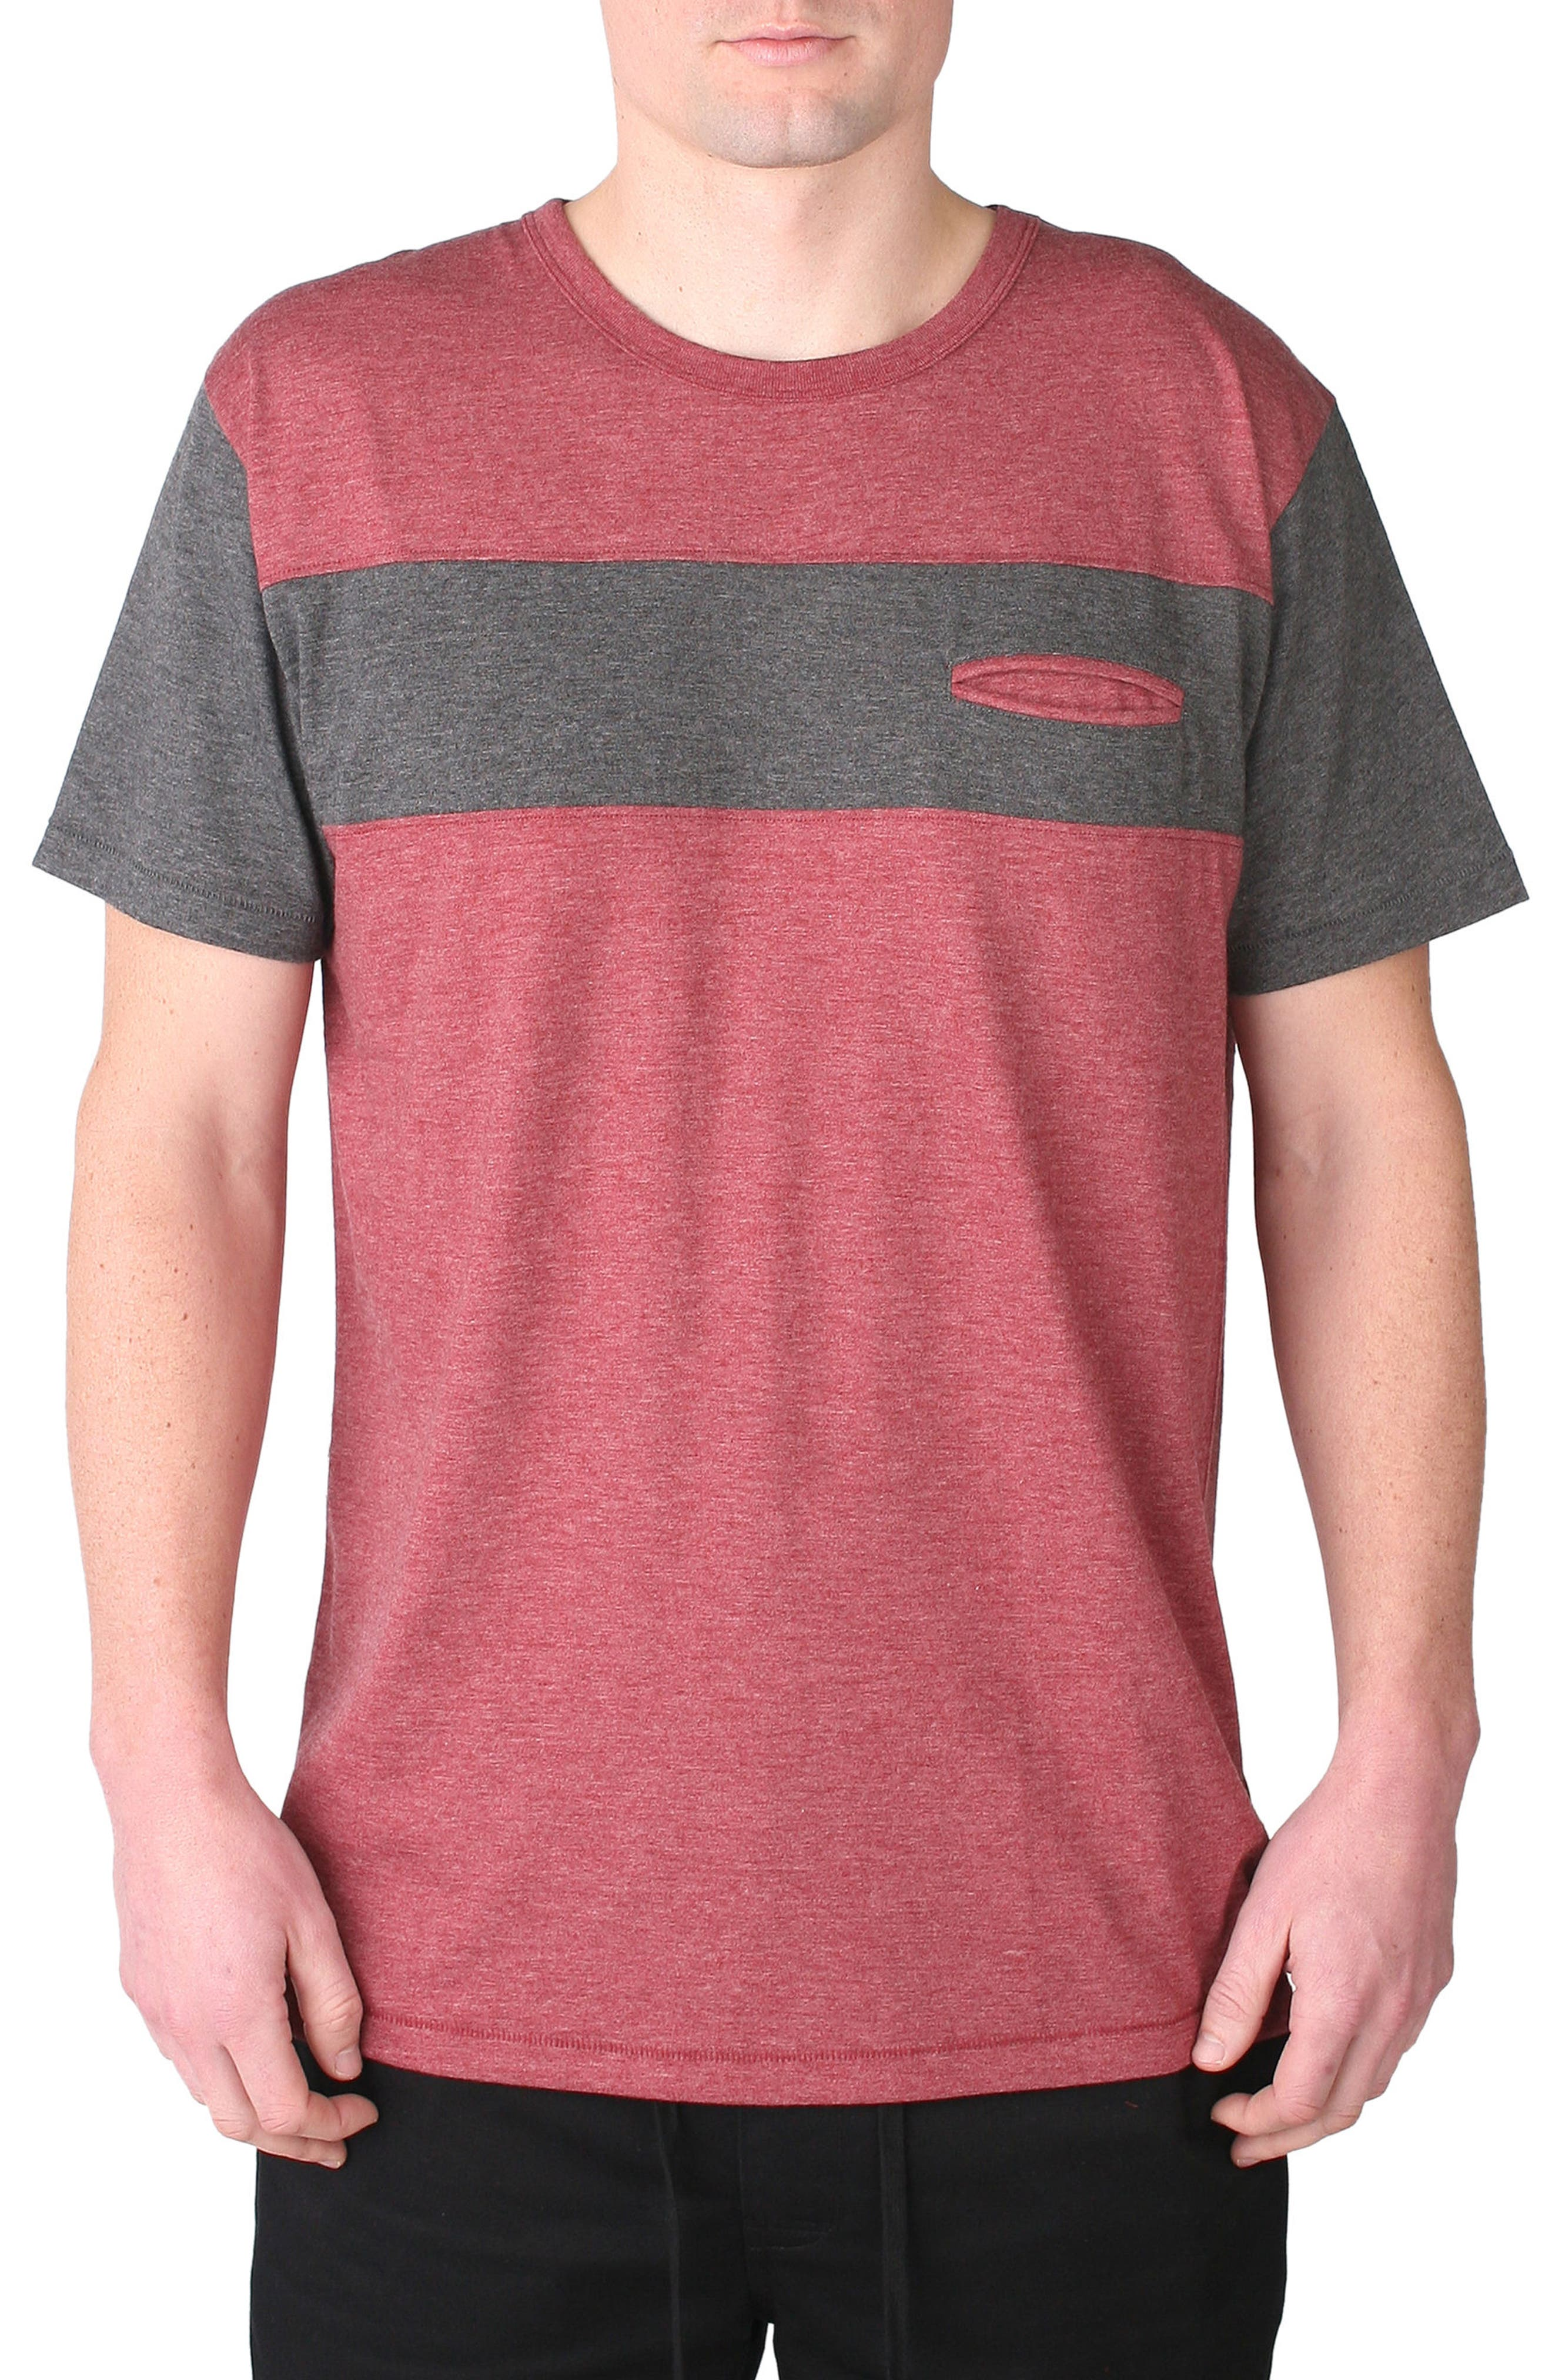 Nelson Pocket T-Shirt,                         Main,                         color, Oxblood/ Charcoal